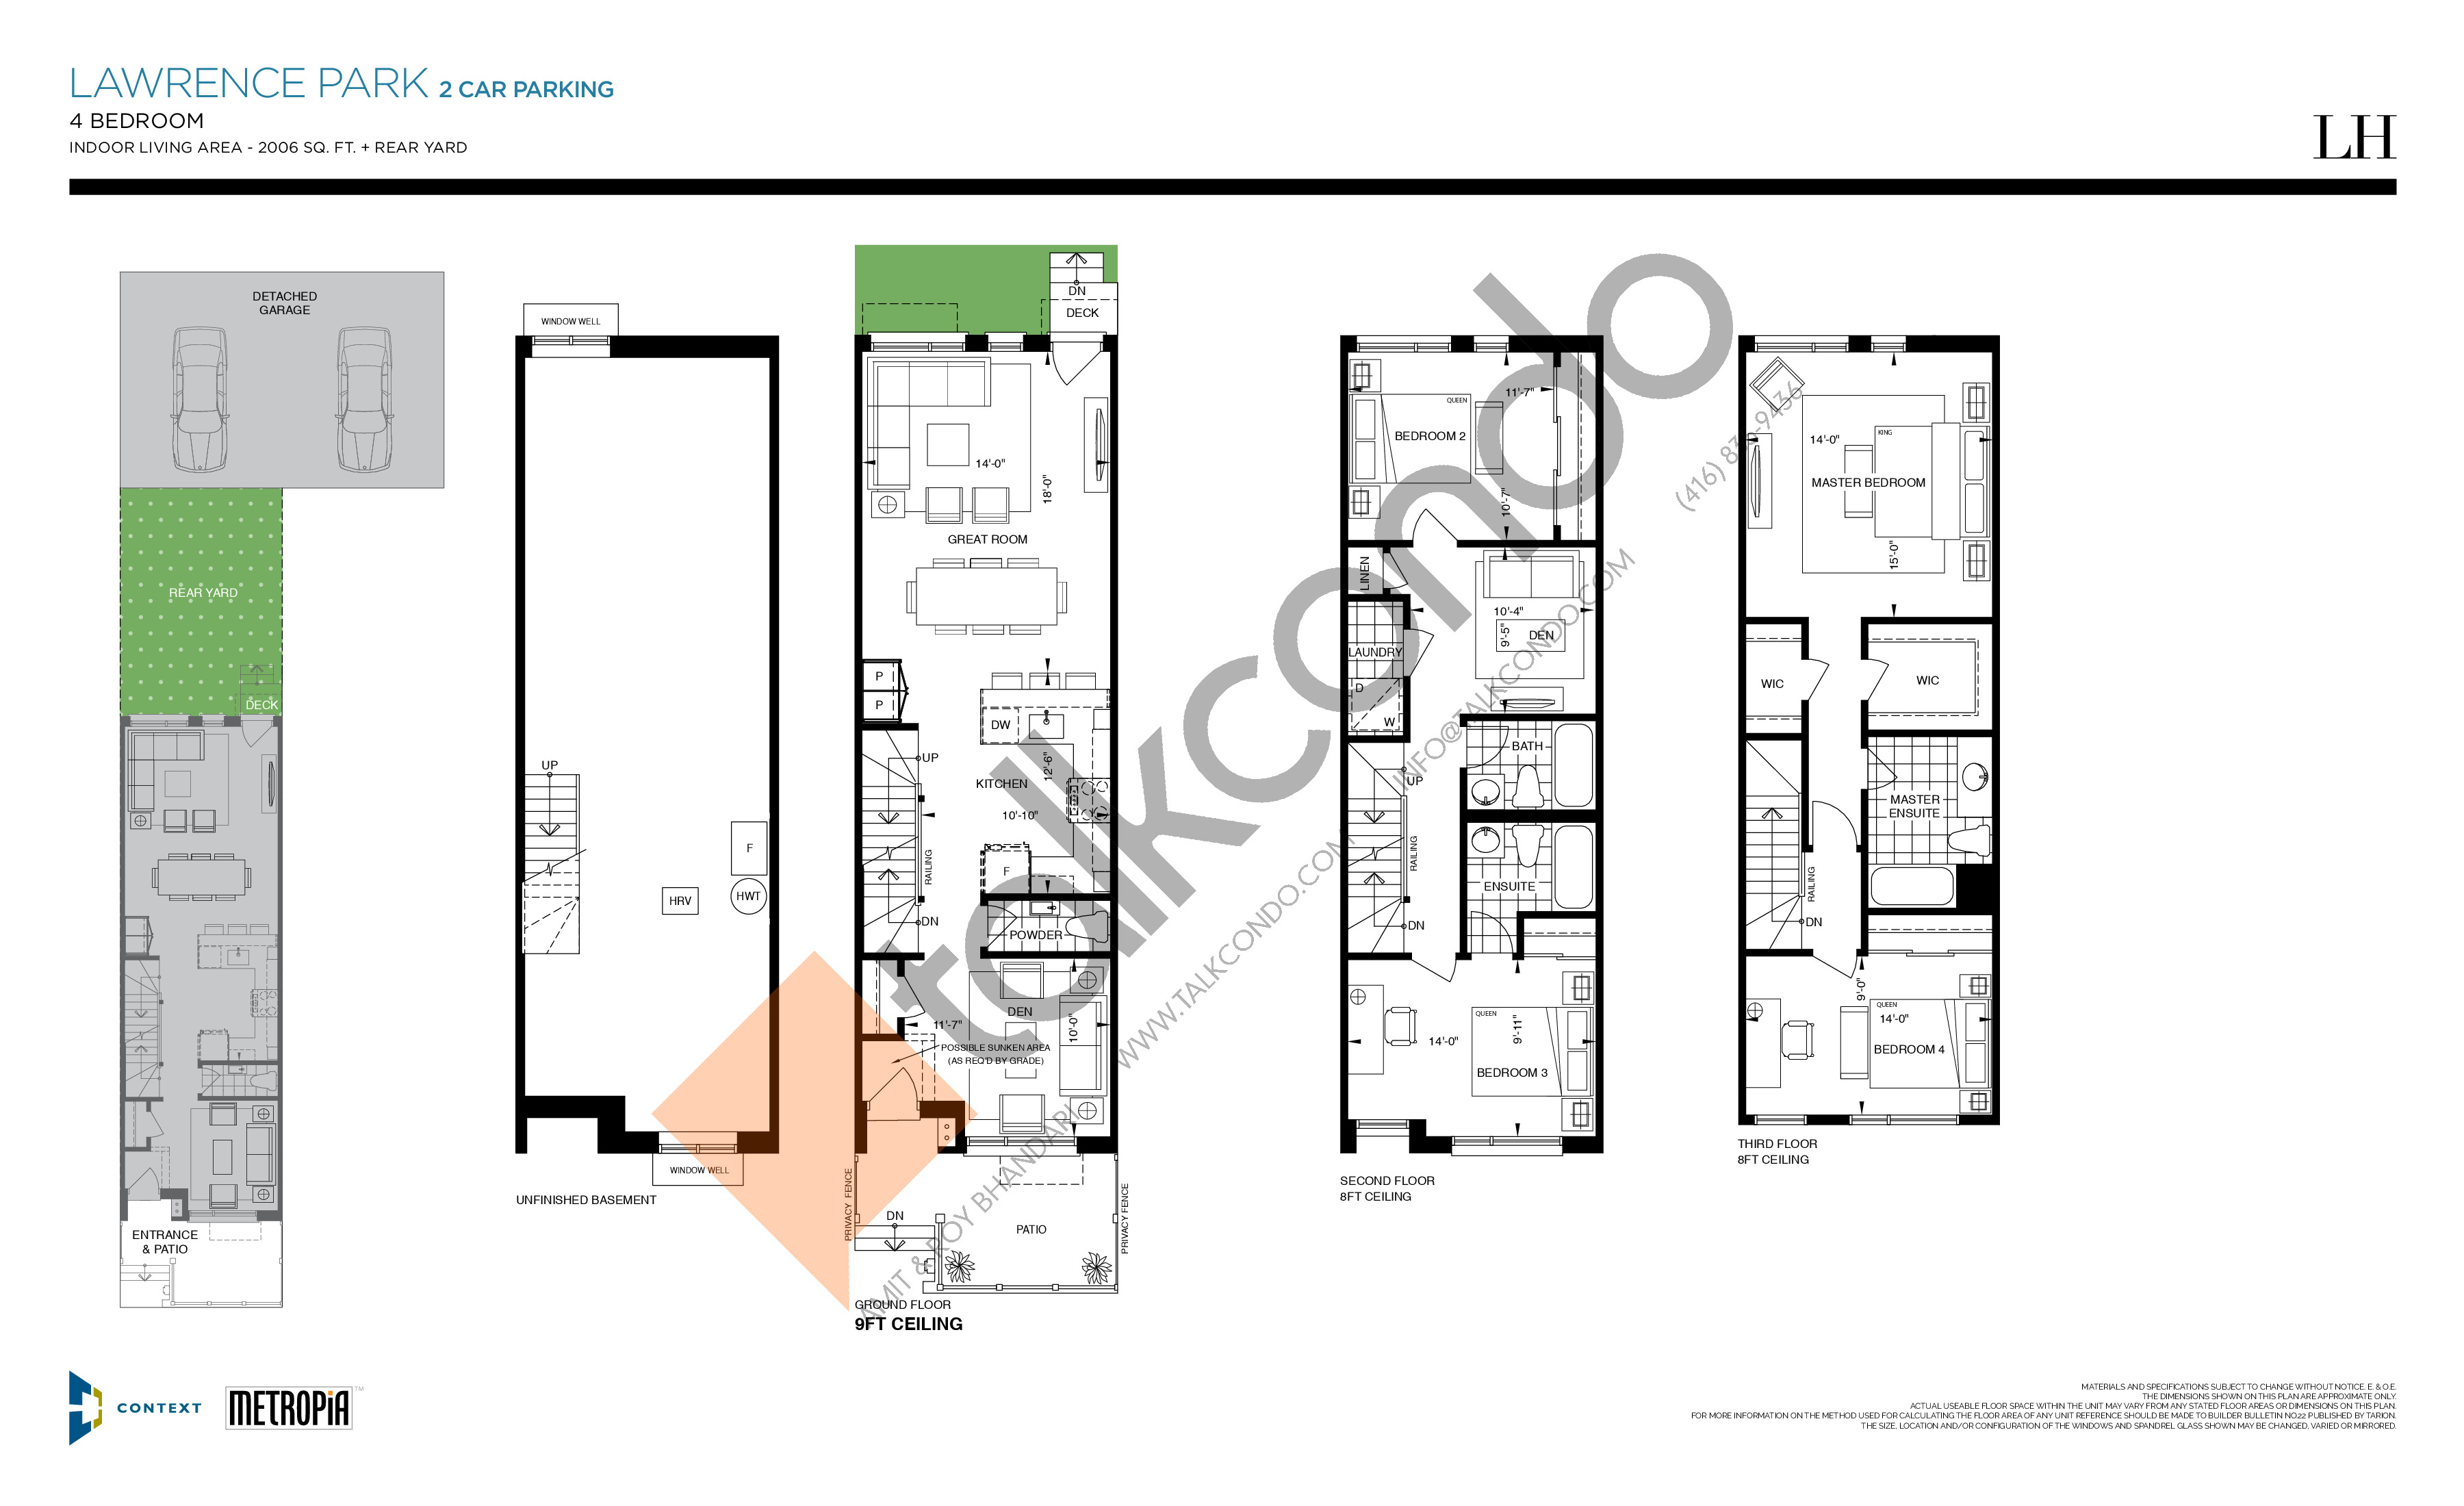 Lawrence Park (2 Car Parking) Floor Plan at The New Lawrence Heights Phase 2 Condos - 2006 sq.ft